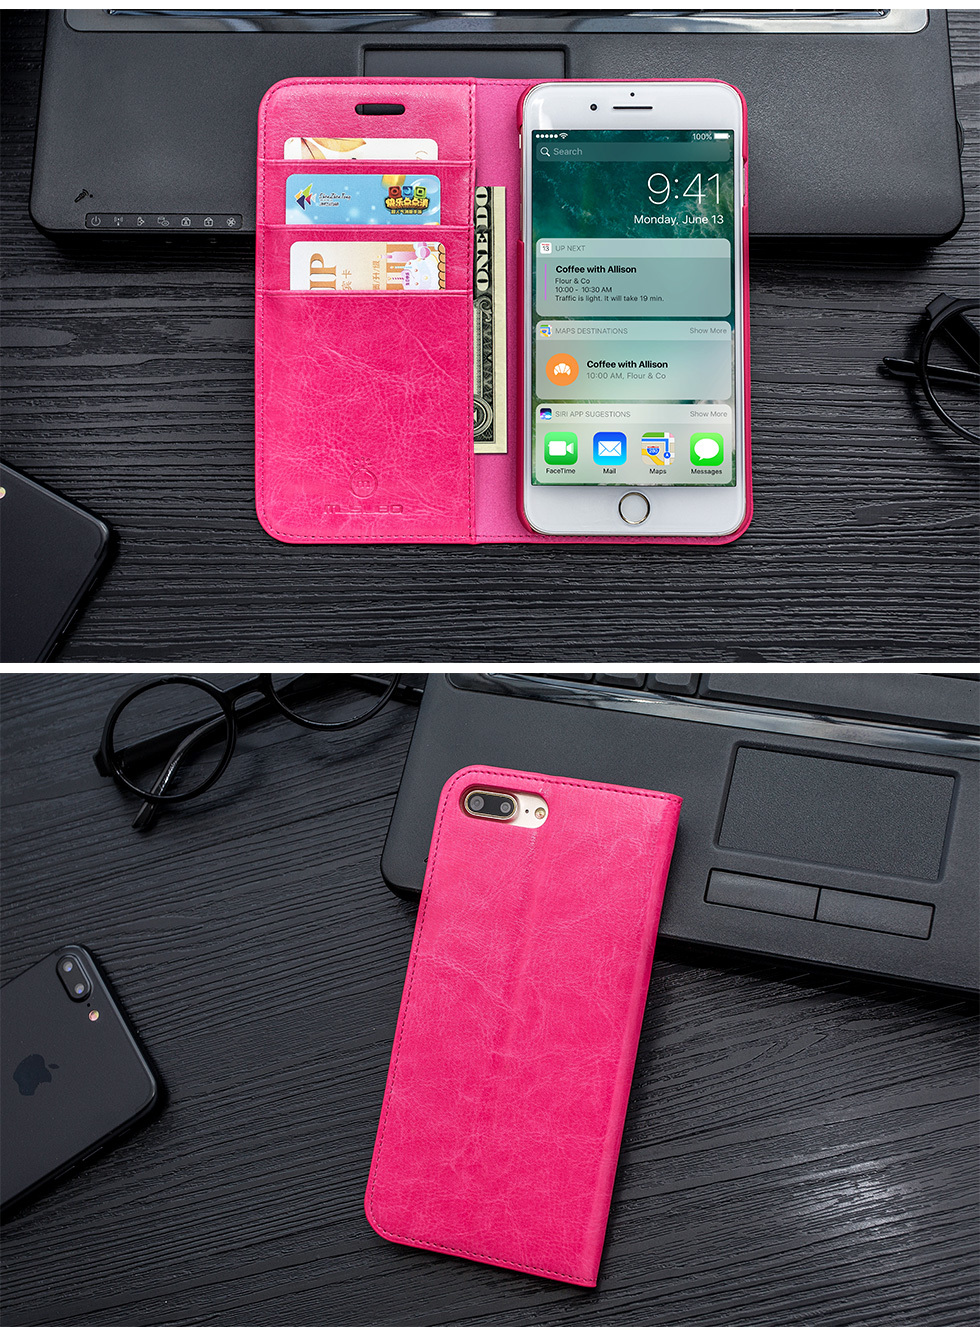 H27cfba49a7024f70872567238fad0d25B Musubo Genuine Leather Flip Case For iPhone 8 Plus 7 Plus Luxury Wallet Fitted Cover For iPhone X 6 6s 5 5s SE Cases Coque capa